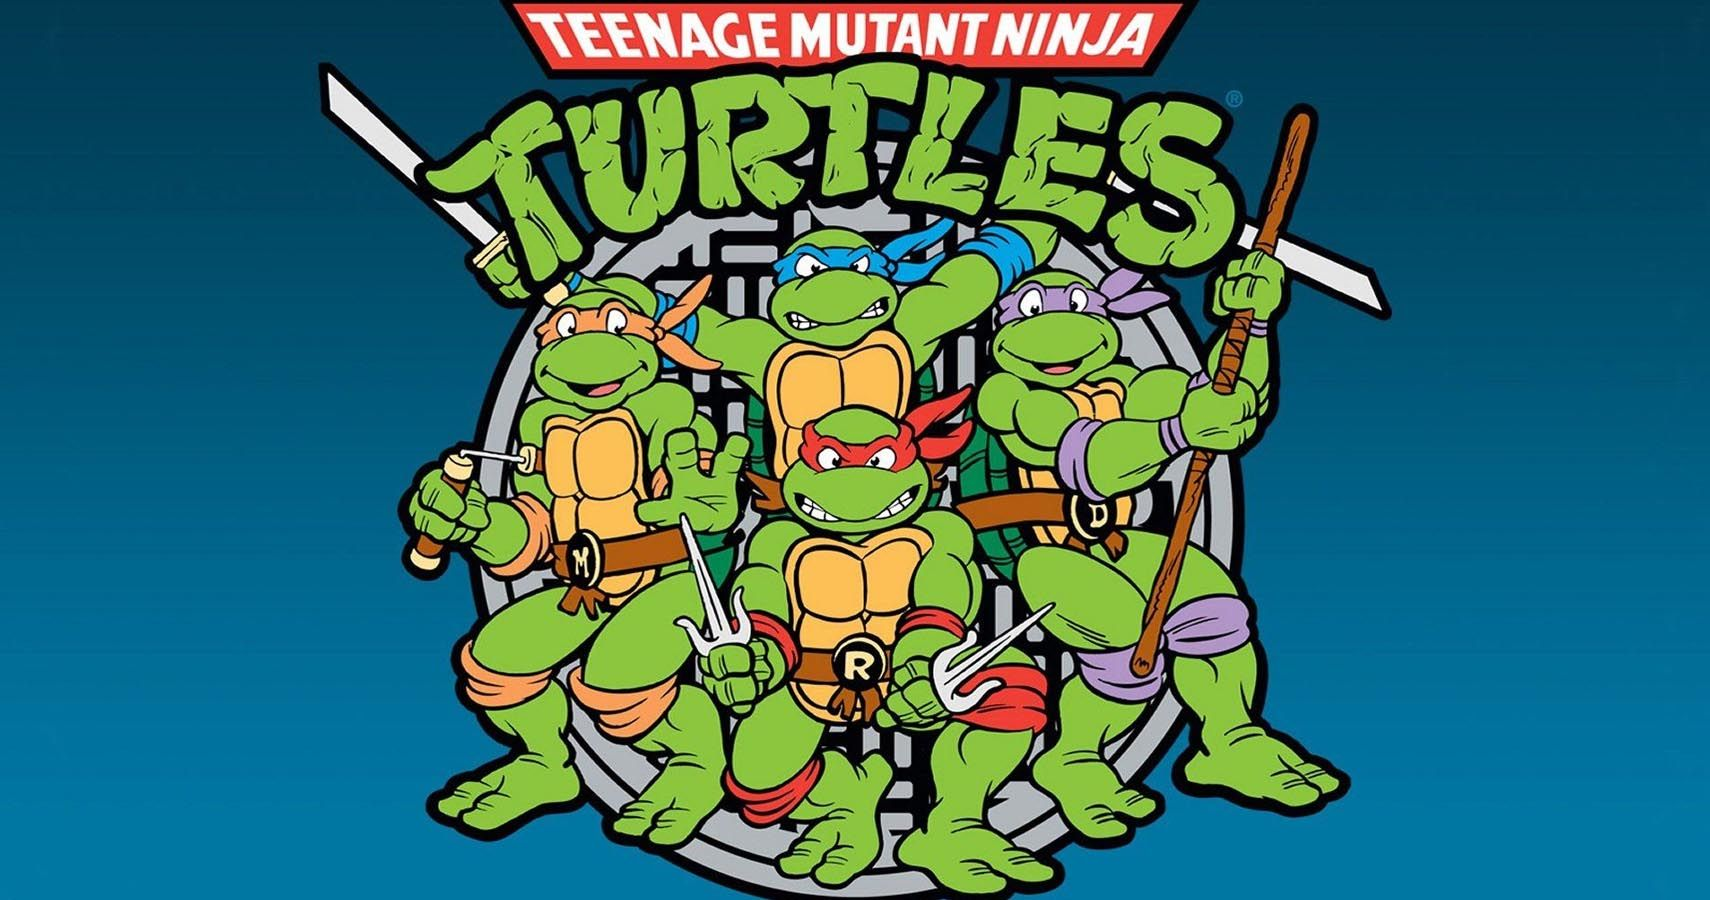 10 Greatest Episodes Of The Original Teenage Mutant Ninja Turtles Cartoon